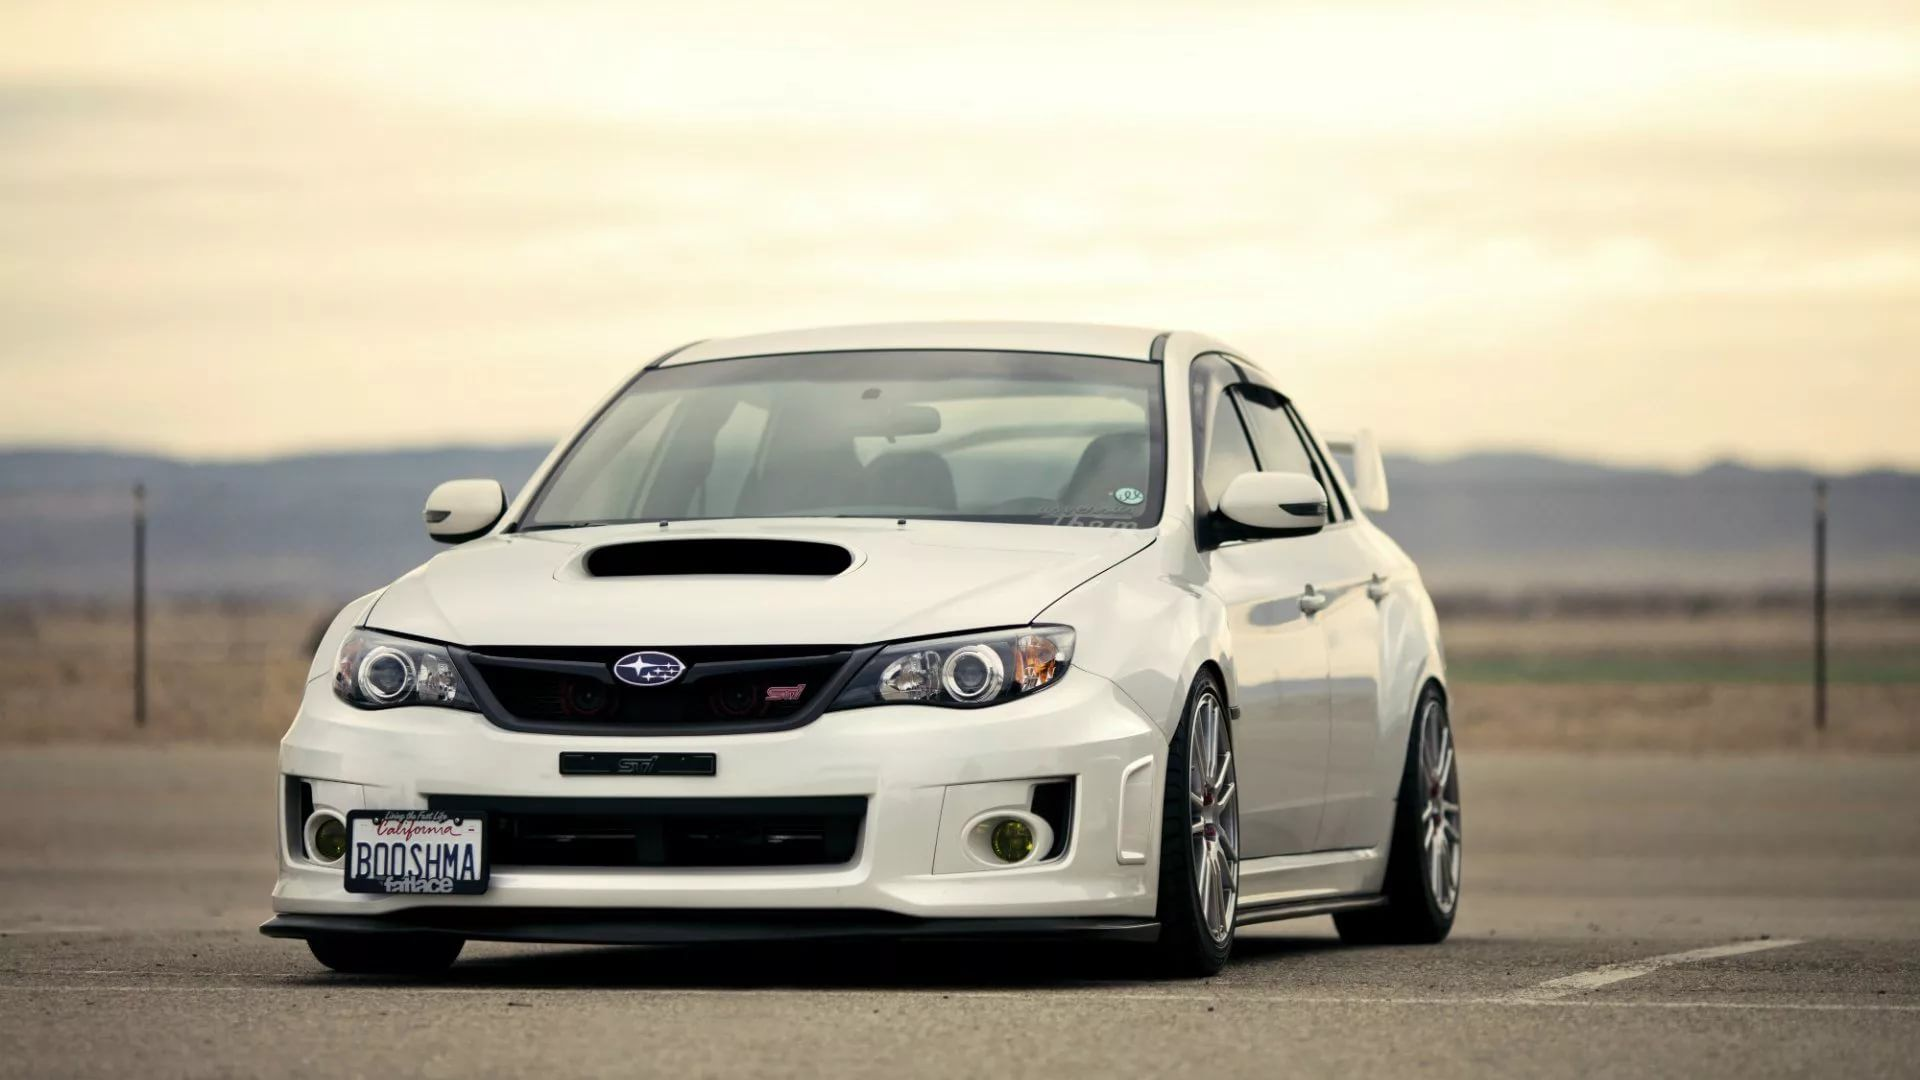 Subaru WRX wallpaper theme